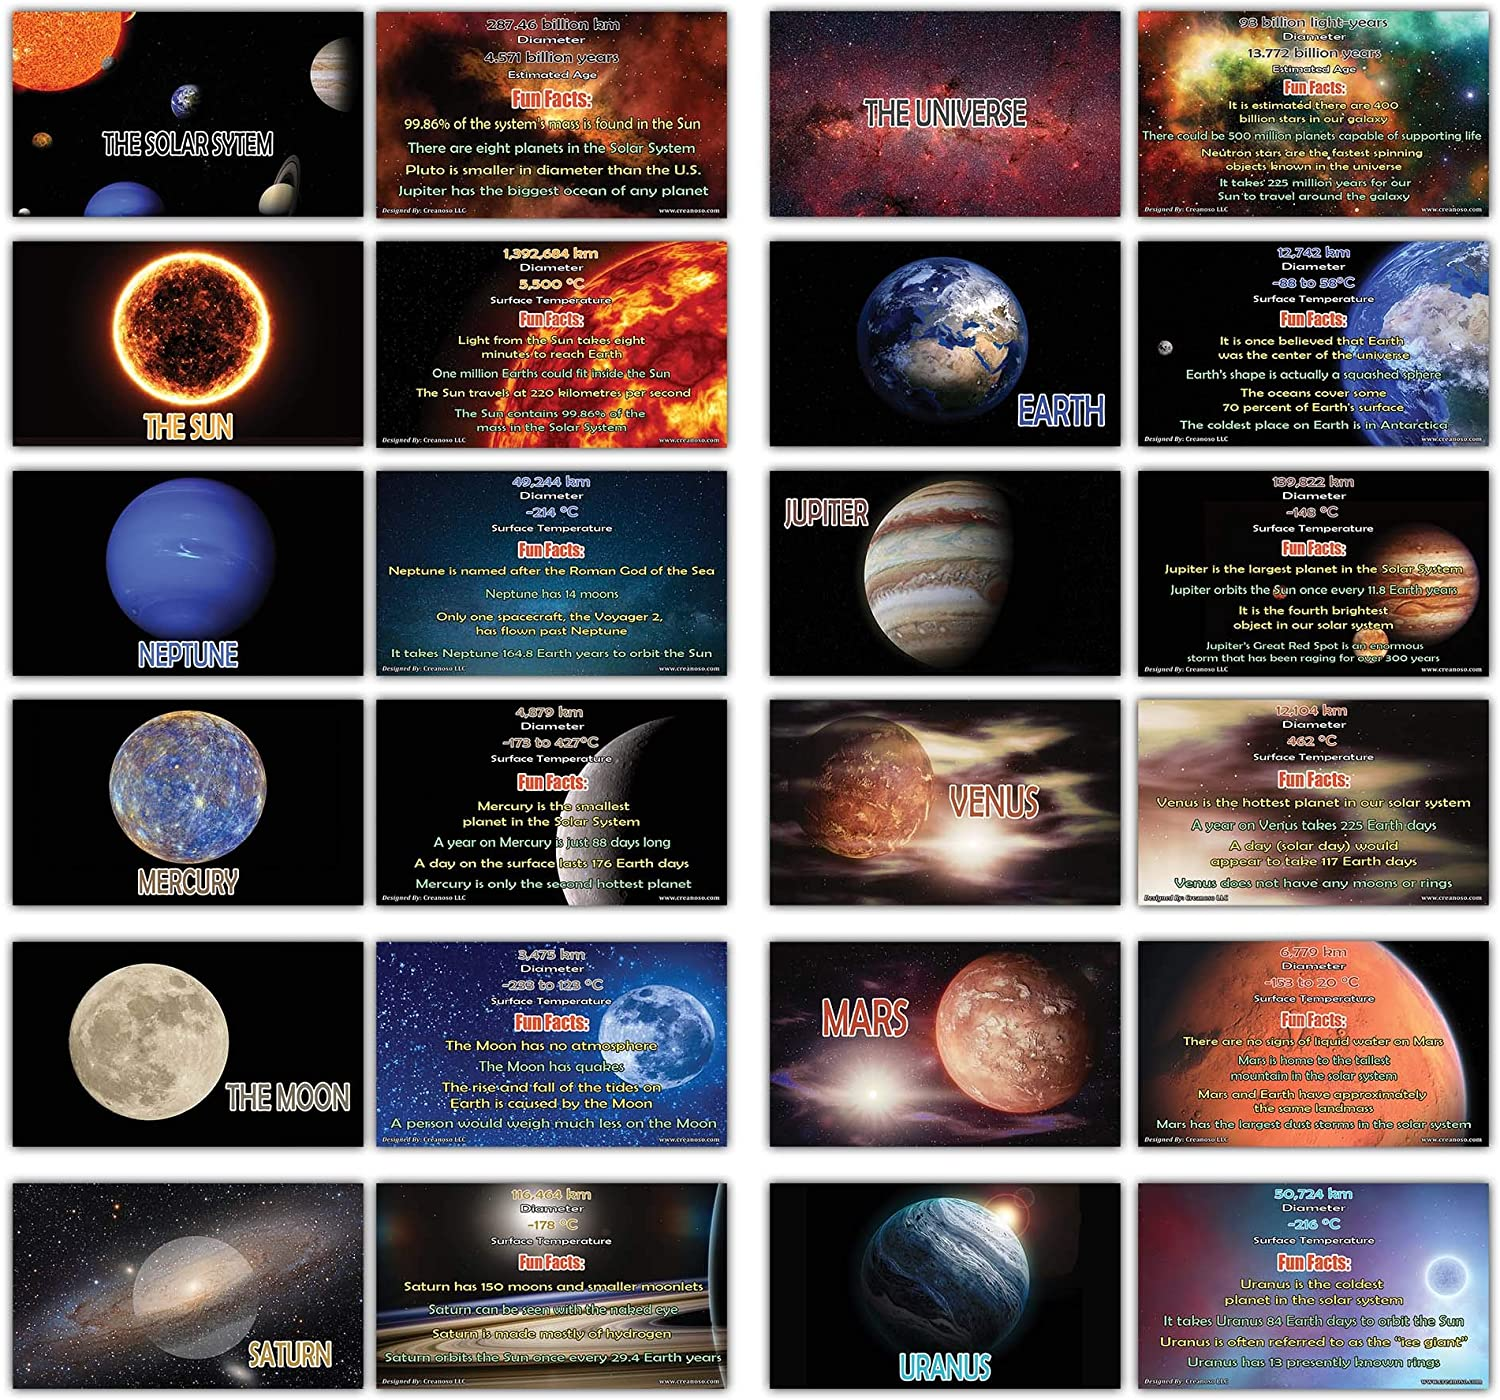 Creanoso Facts About Planet and Universe Flash Cards (24-Pack) – Assorted Informational Learning Cards Gift Set for Students, Kids, Teens, Men & Women - Cool Rewards Token Collection Set